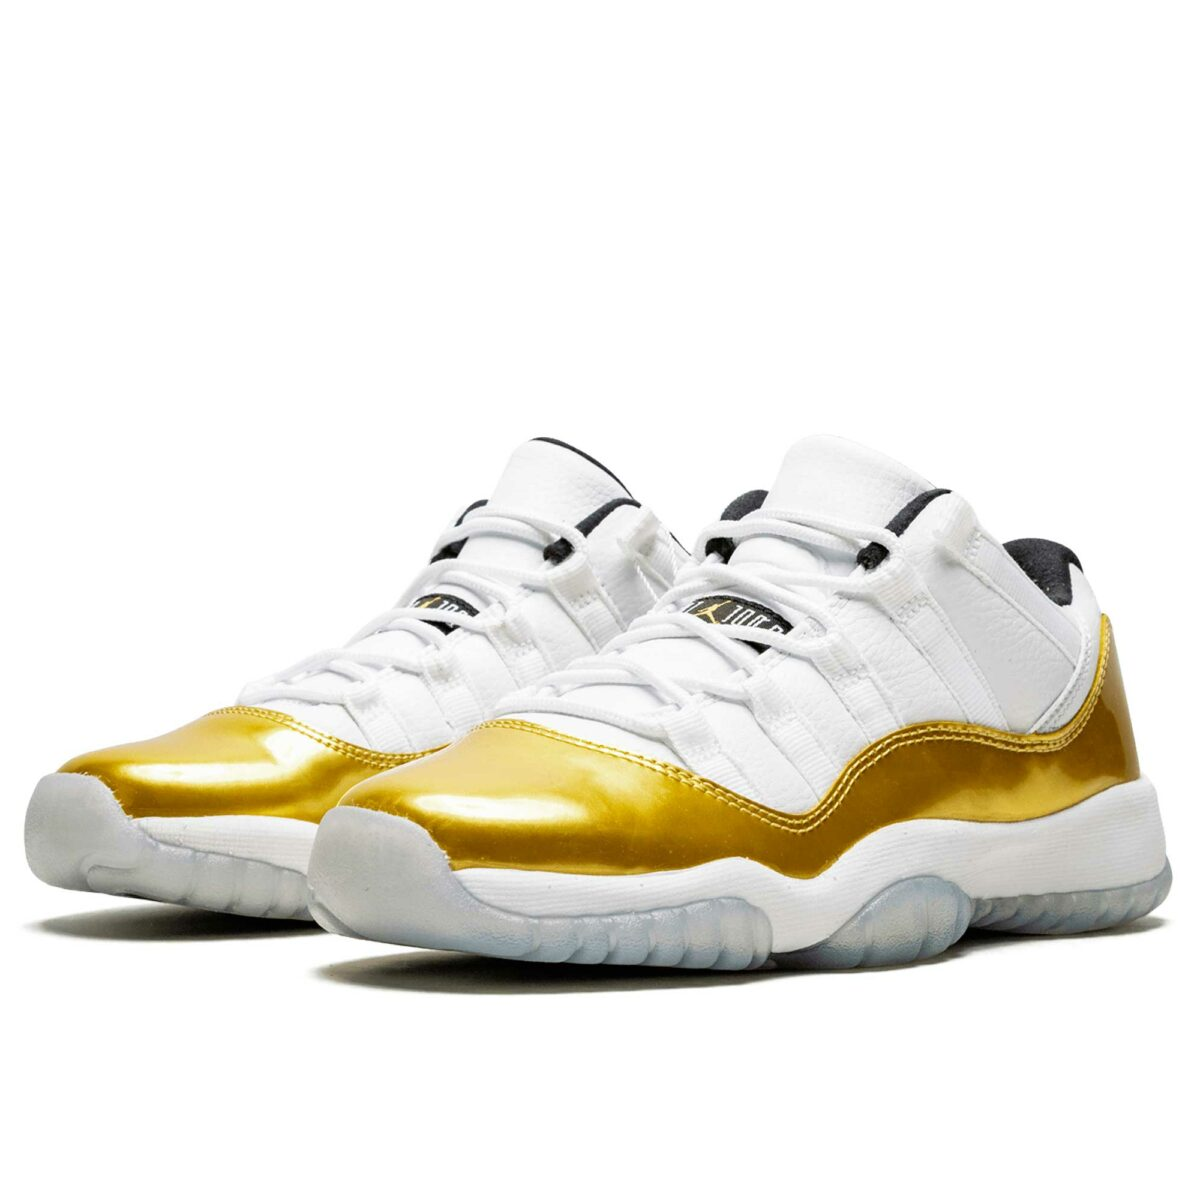 nike air Jordan 11 retro low bg closing ceremony 528896_103 купить